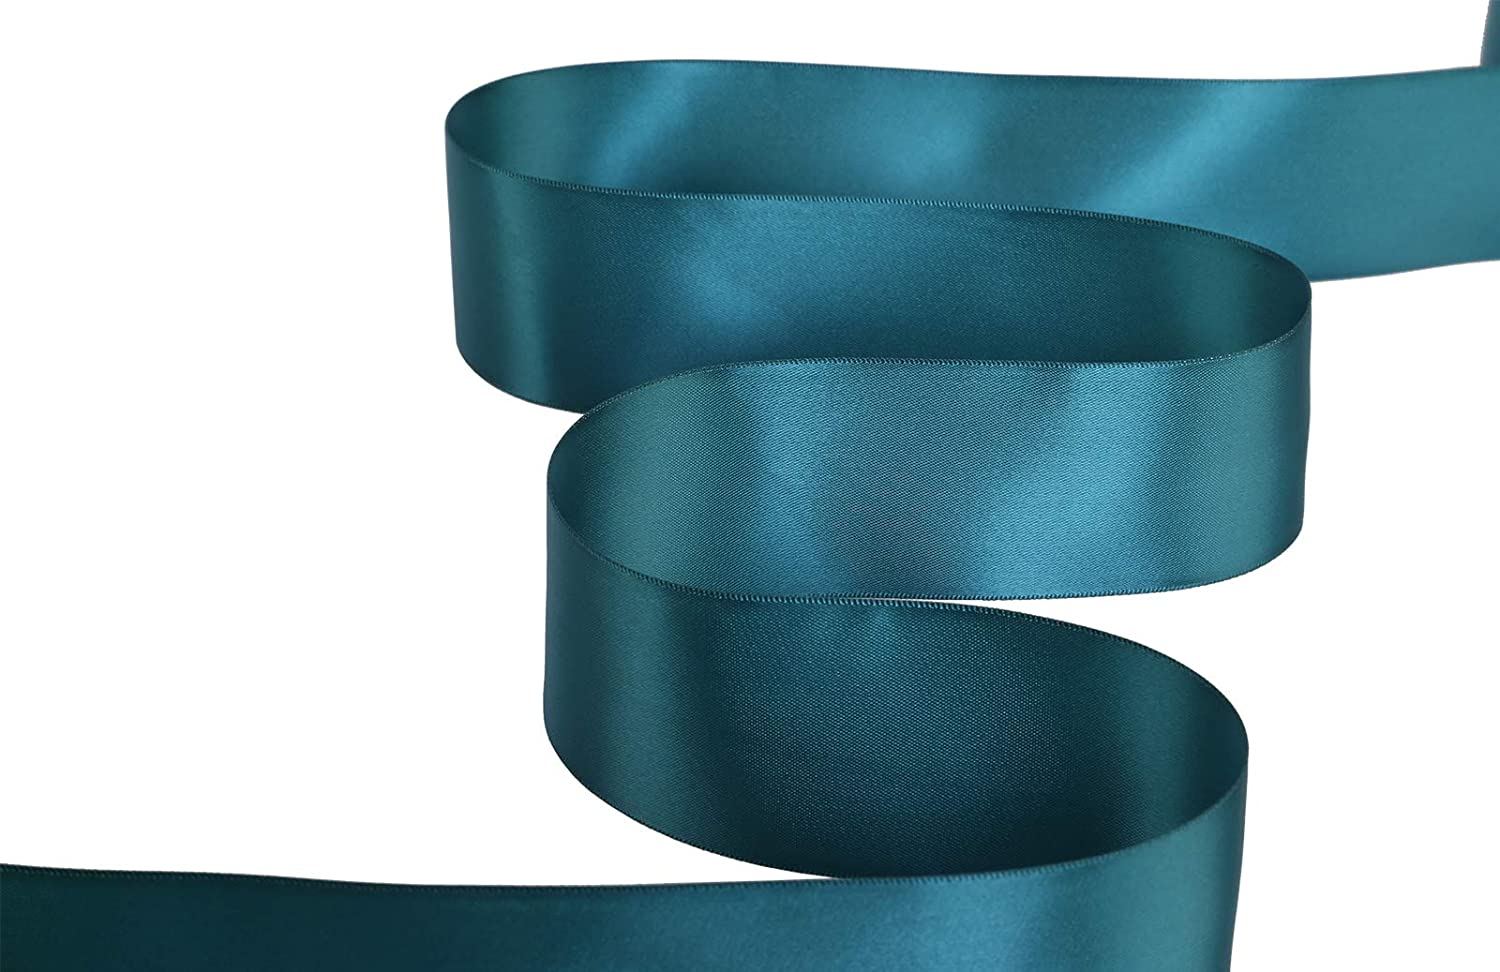 347-Teal), Set For Gift Wrapping, Party Decor, Sewing Applications, Wedding and Craft Ribbonitlux 2 wide Double Face Satin Ribbon 25 Yards